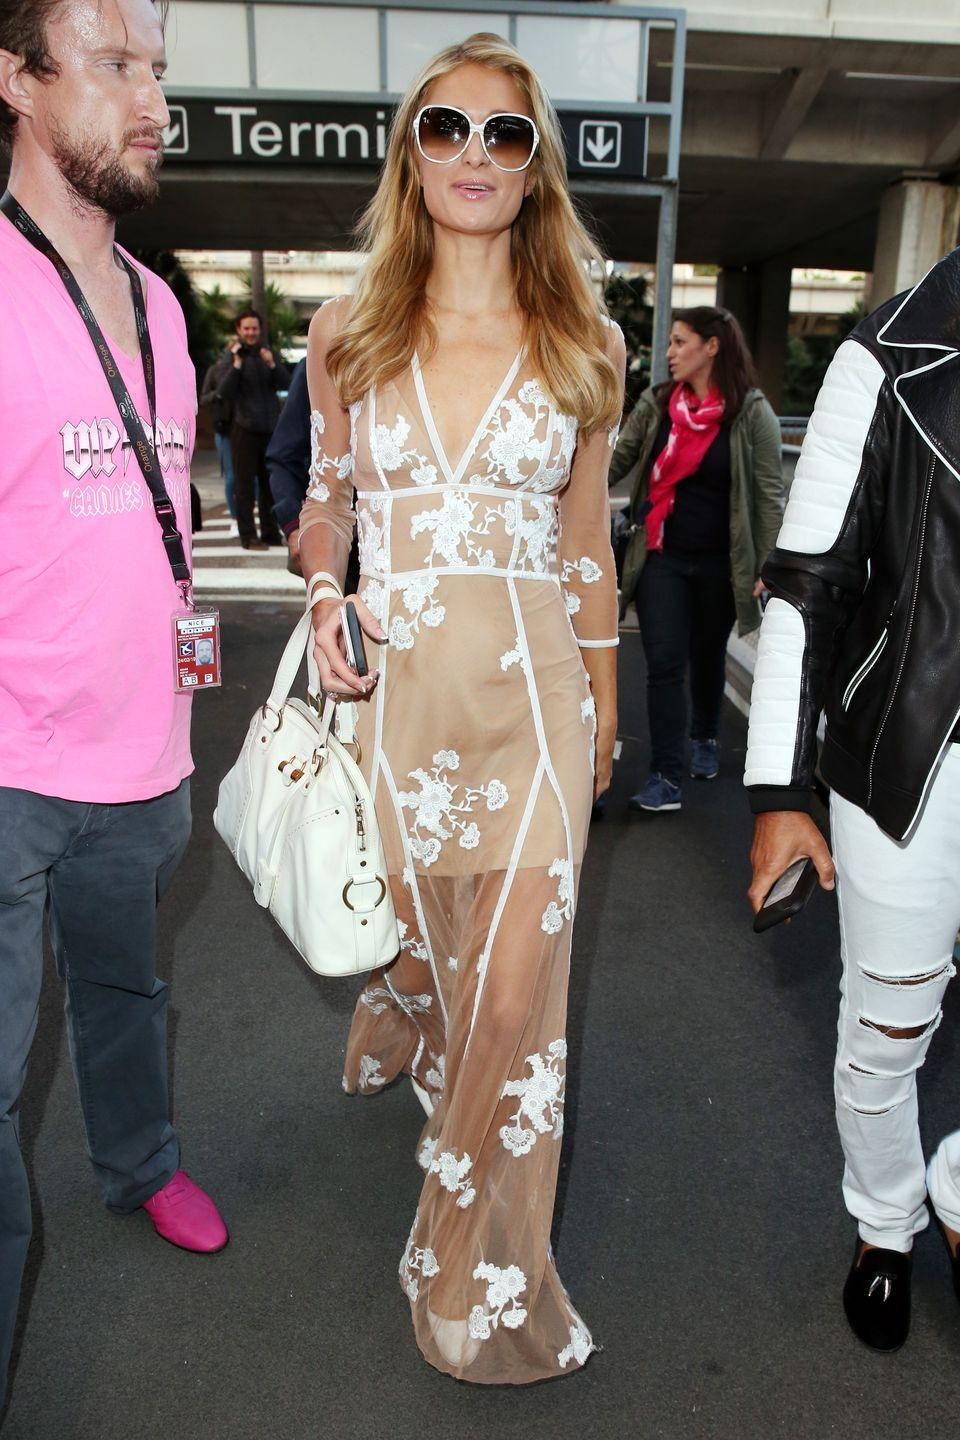 <p><strong>Paris Hilton, 2016: </strong>Needs to take her sunglasses off and watch where she's stepping in this gown and heels situation.</p>